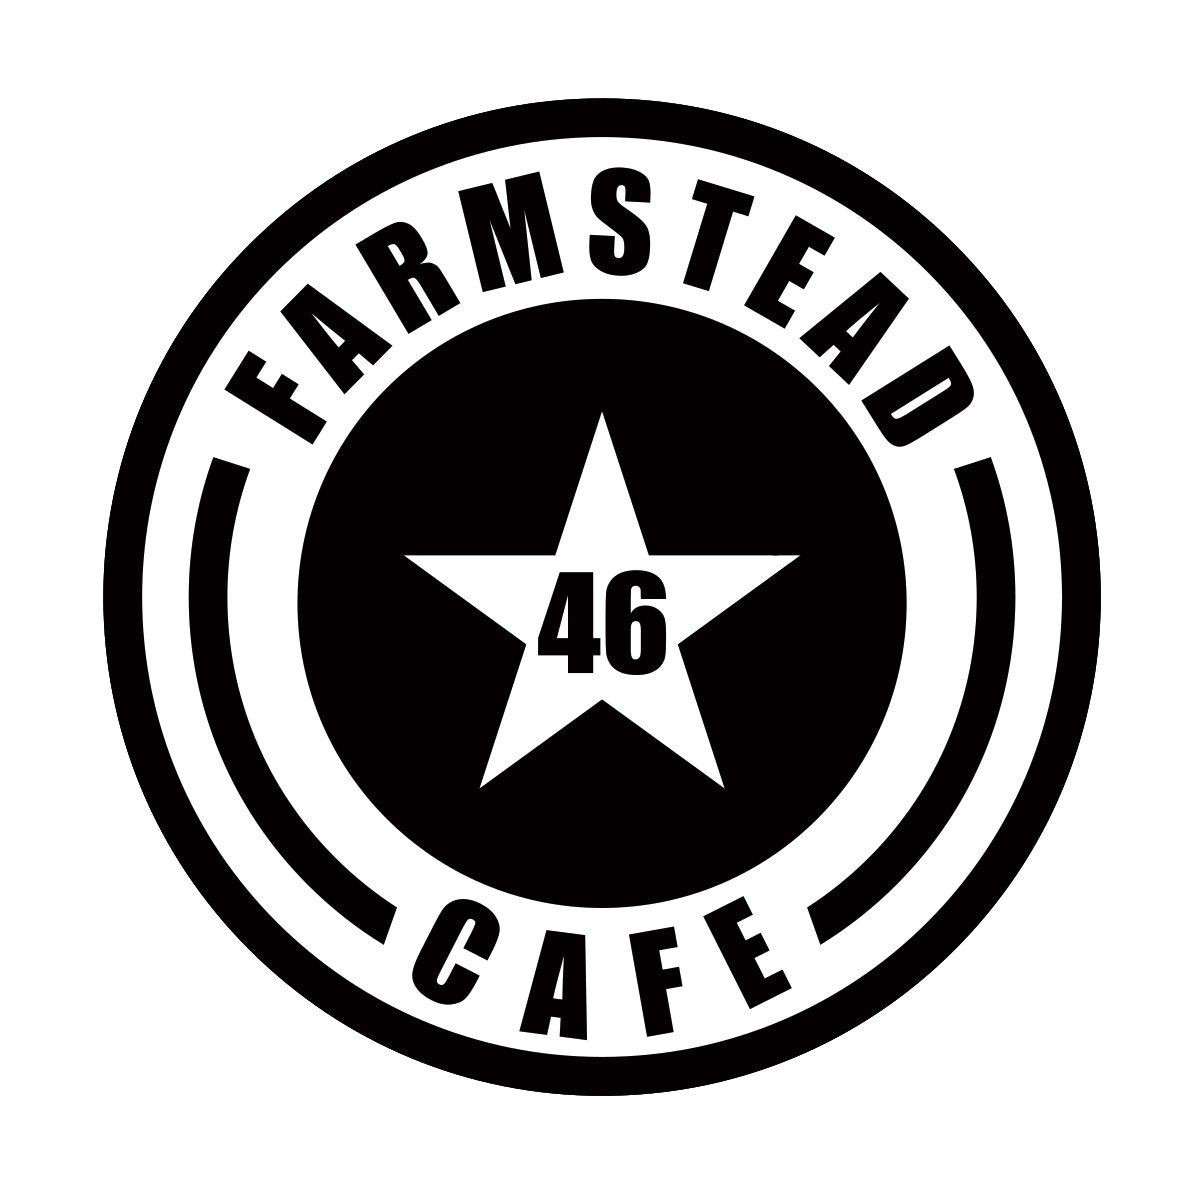 Farmstead Cafe